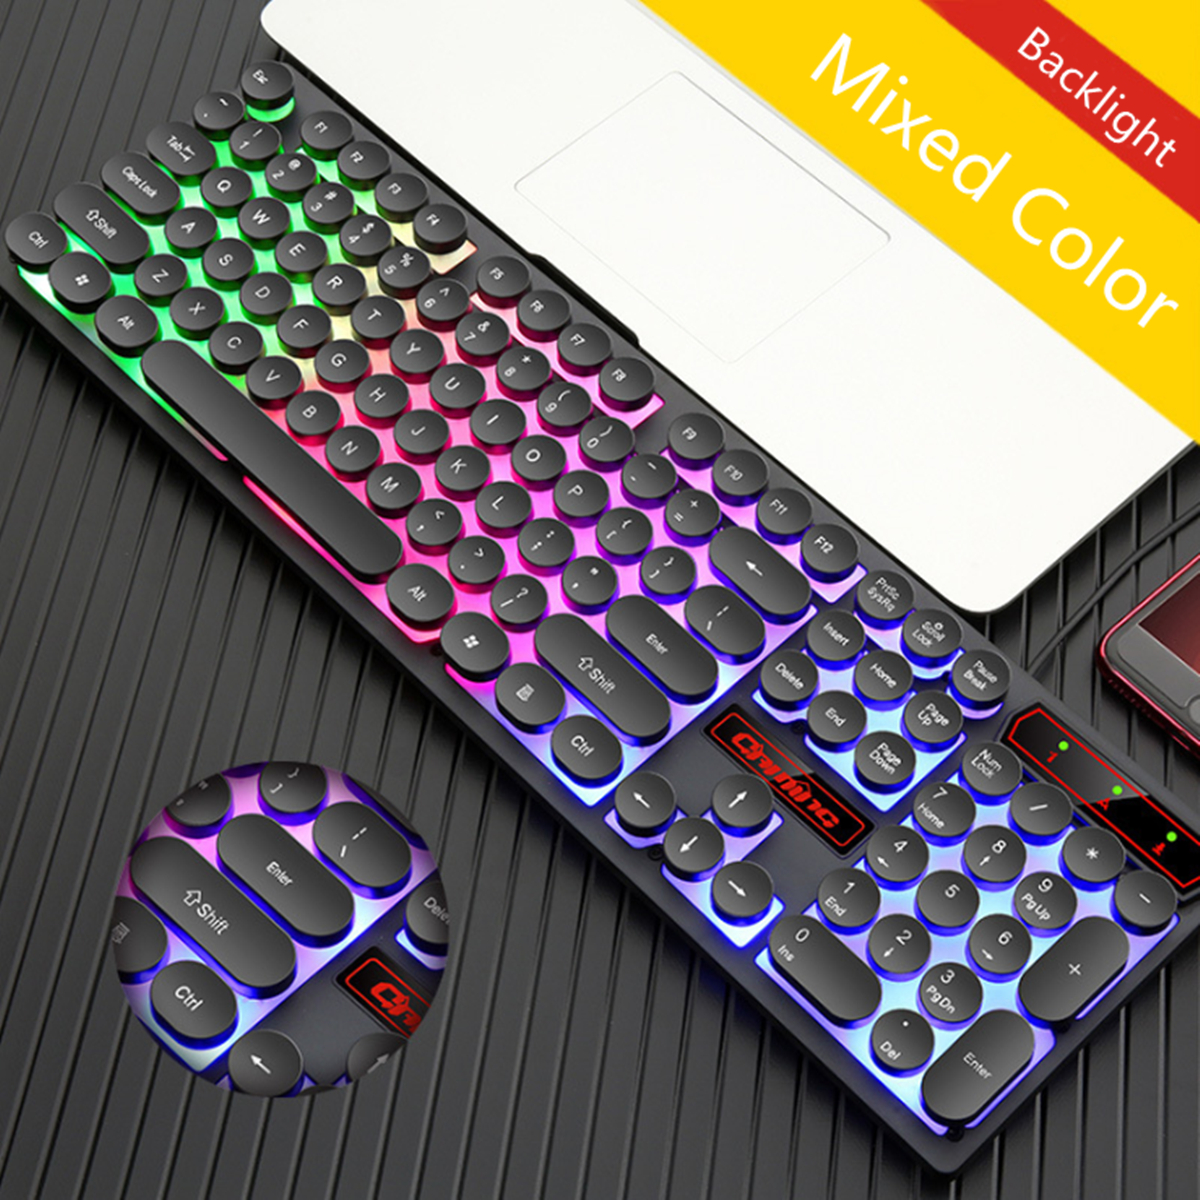 лучшая цена Mechanical LED Wired Backlit Gaming Keyboard Steampunk Keycaps Typewriter USB Computer Peripherals Aluminum Alloy Keyboards